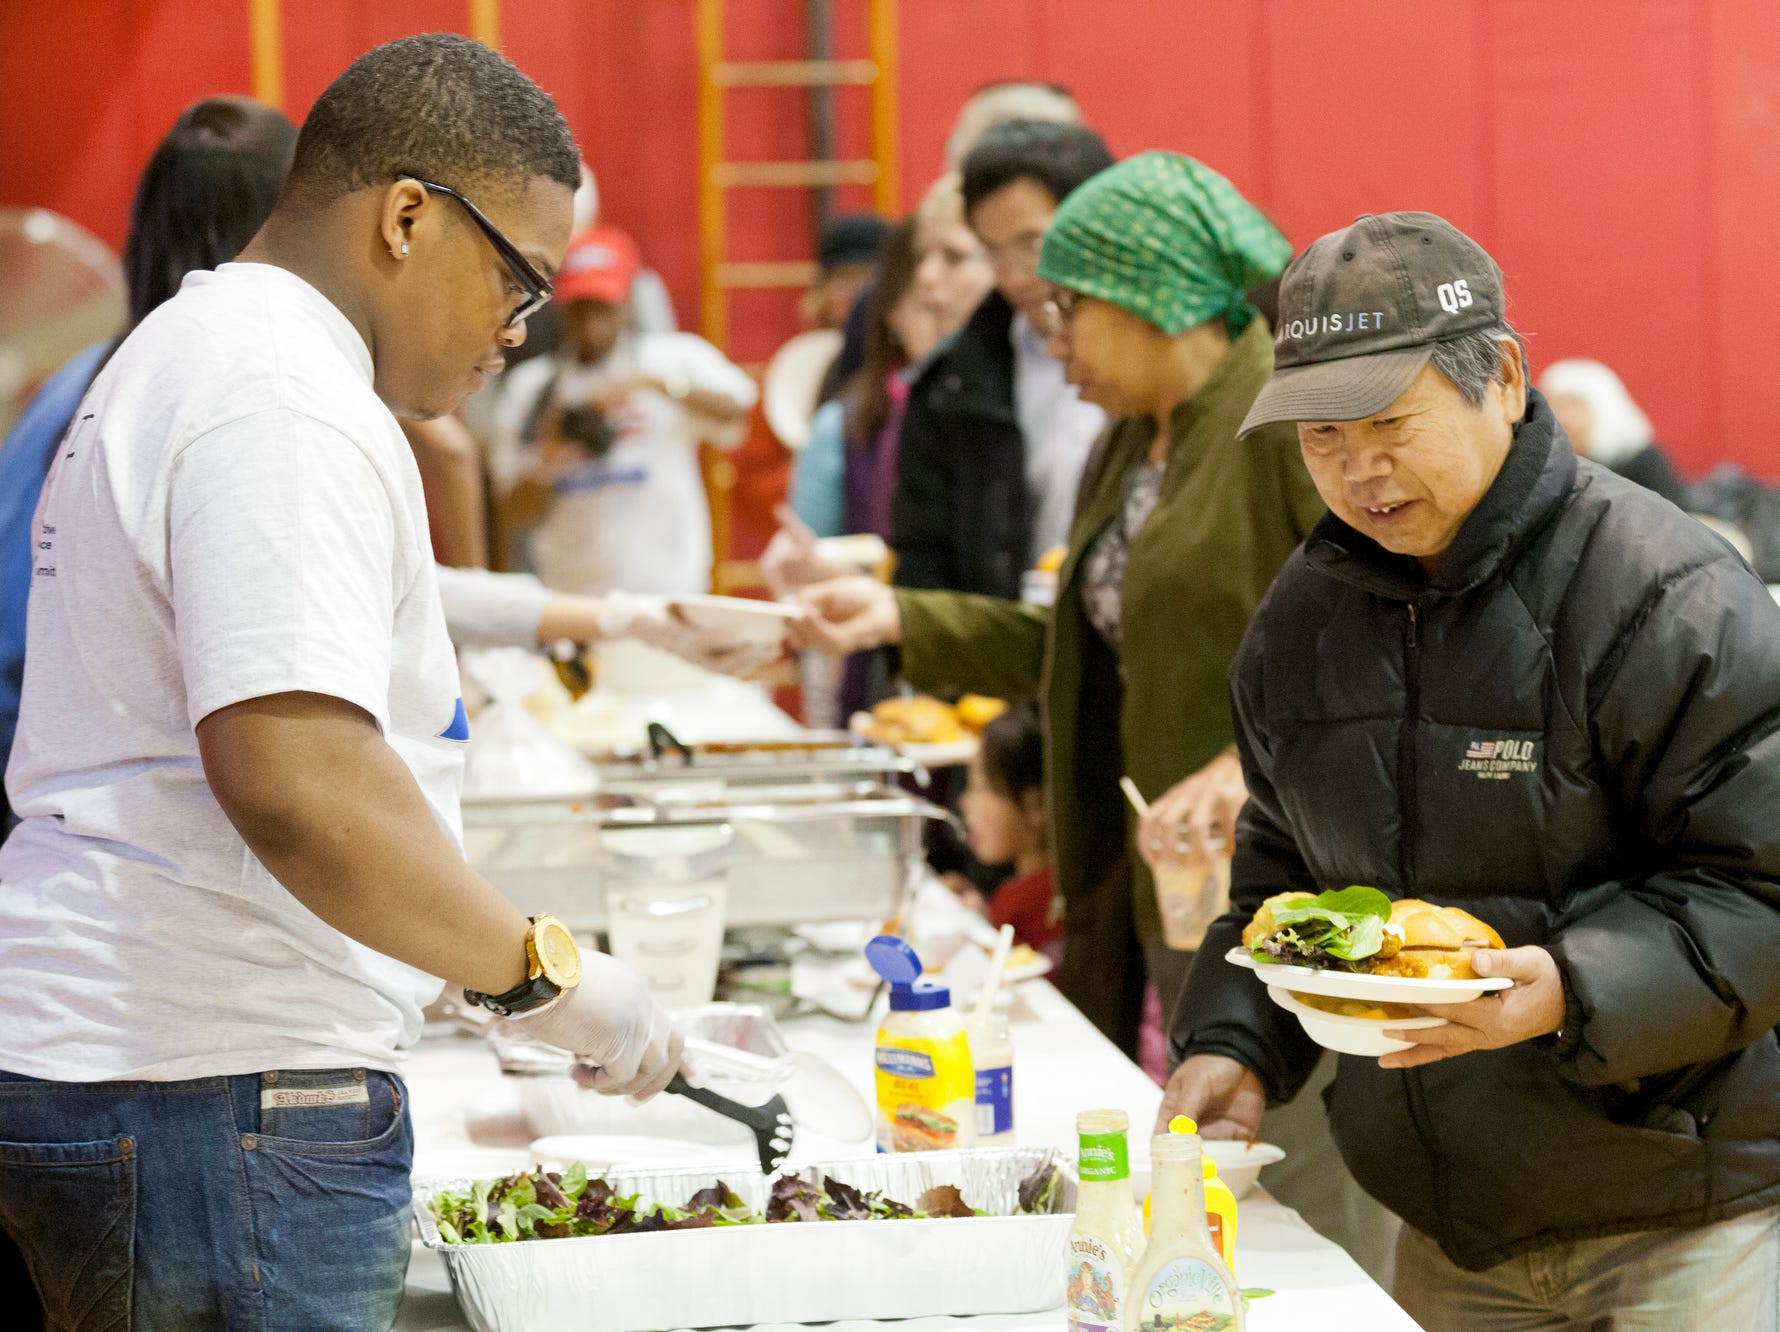 2014: Cornell University freshman Anthony Halmon, of Chicago, left, volunteers his time serving salad, as Chao Cheng of Ithaca, right, makes his way through the food line Monday at the Martin Luther King Jr. luncheon held in the Beverly J. Martin School gym.